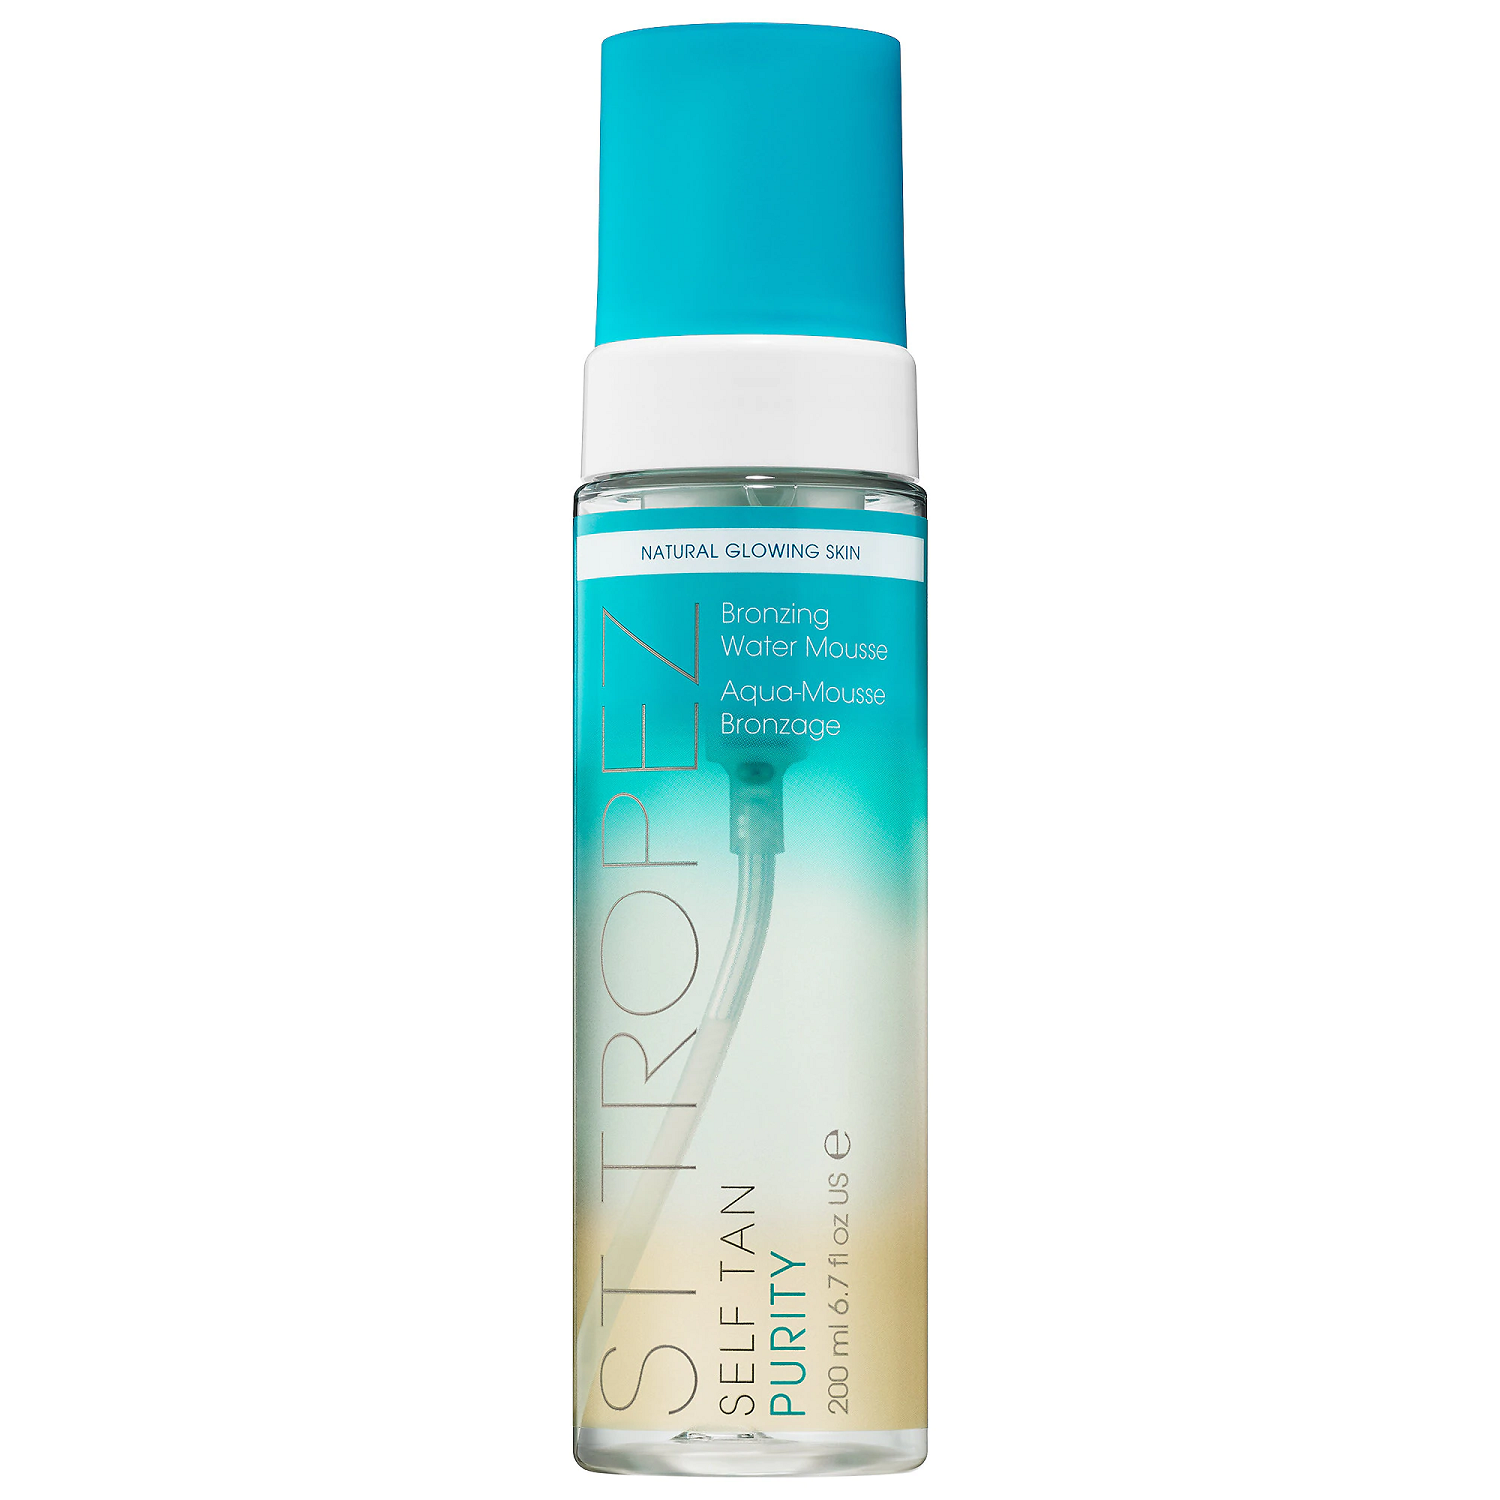 SELF TAN PURITY BRONZING WATER MOUSSE (MOUSSE BRONCEADOR)